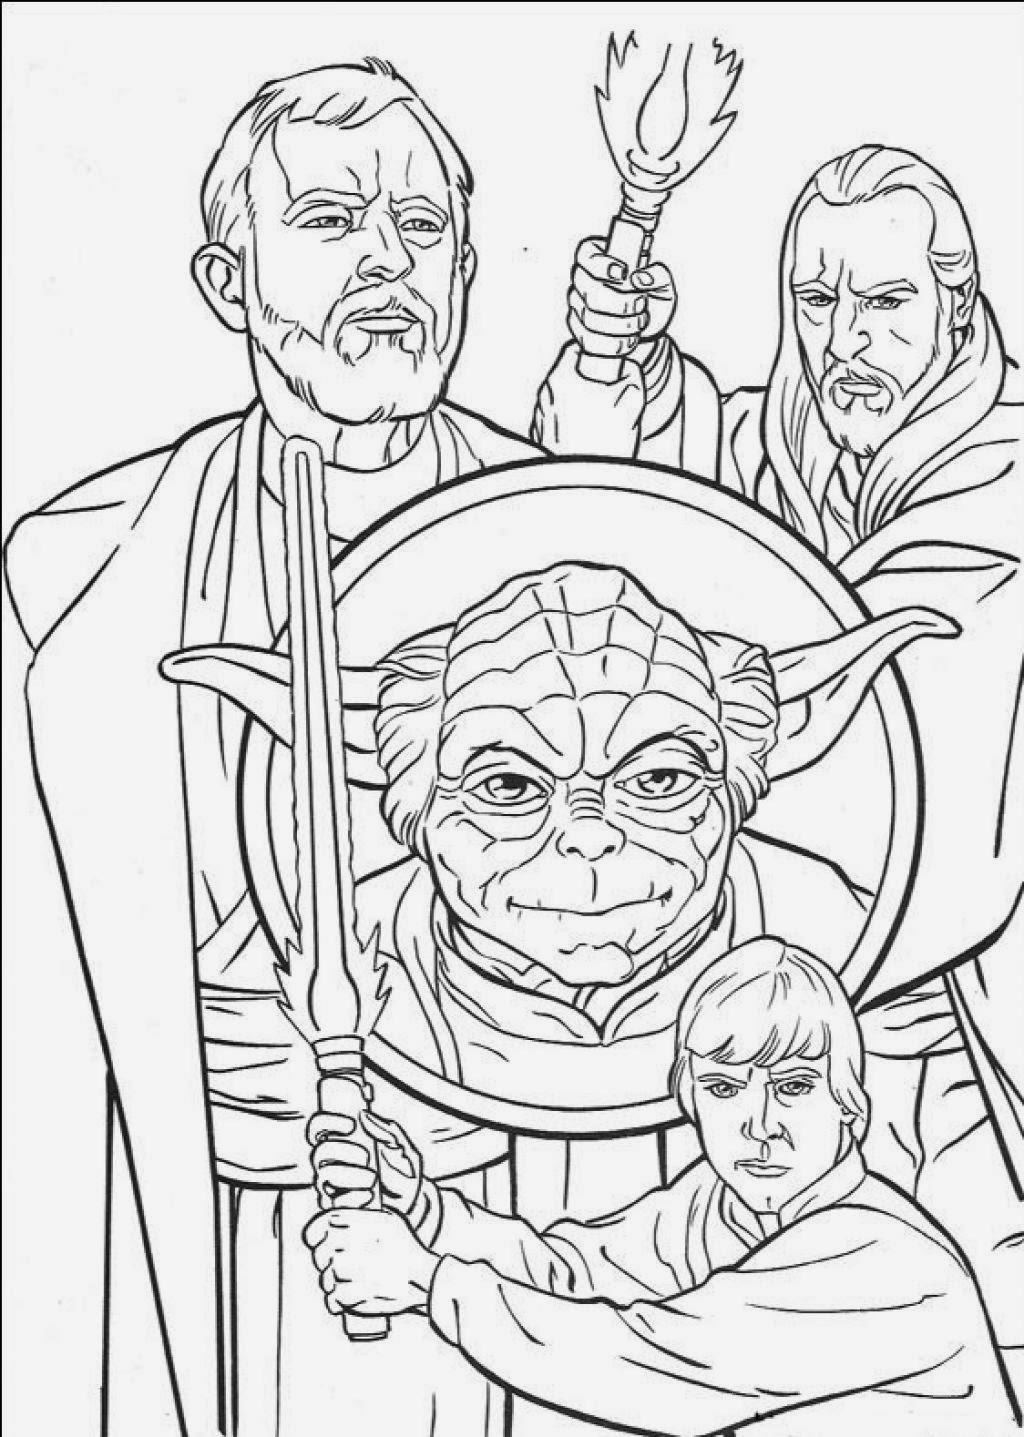 coloring star wars homeschooling on the bayou john williams composer study wars star coloring